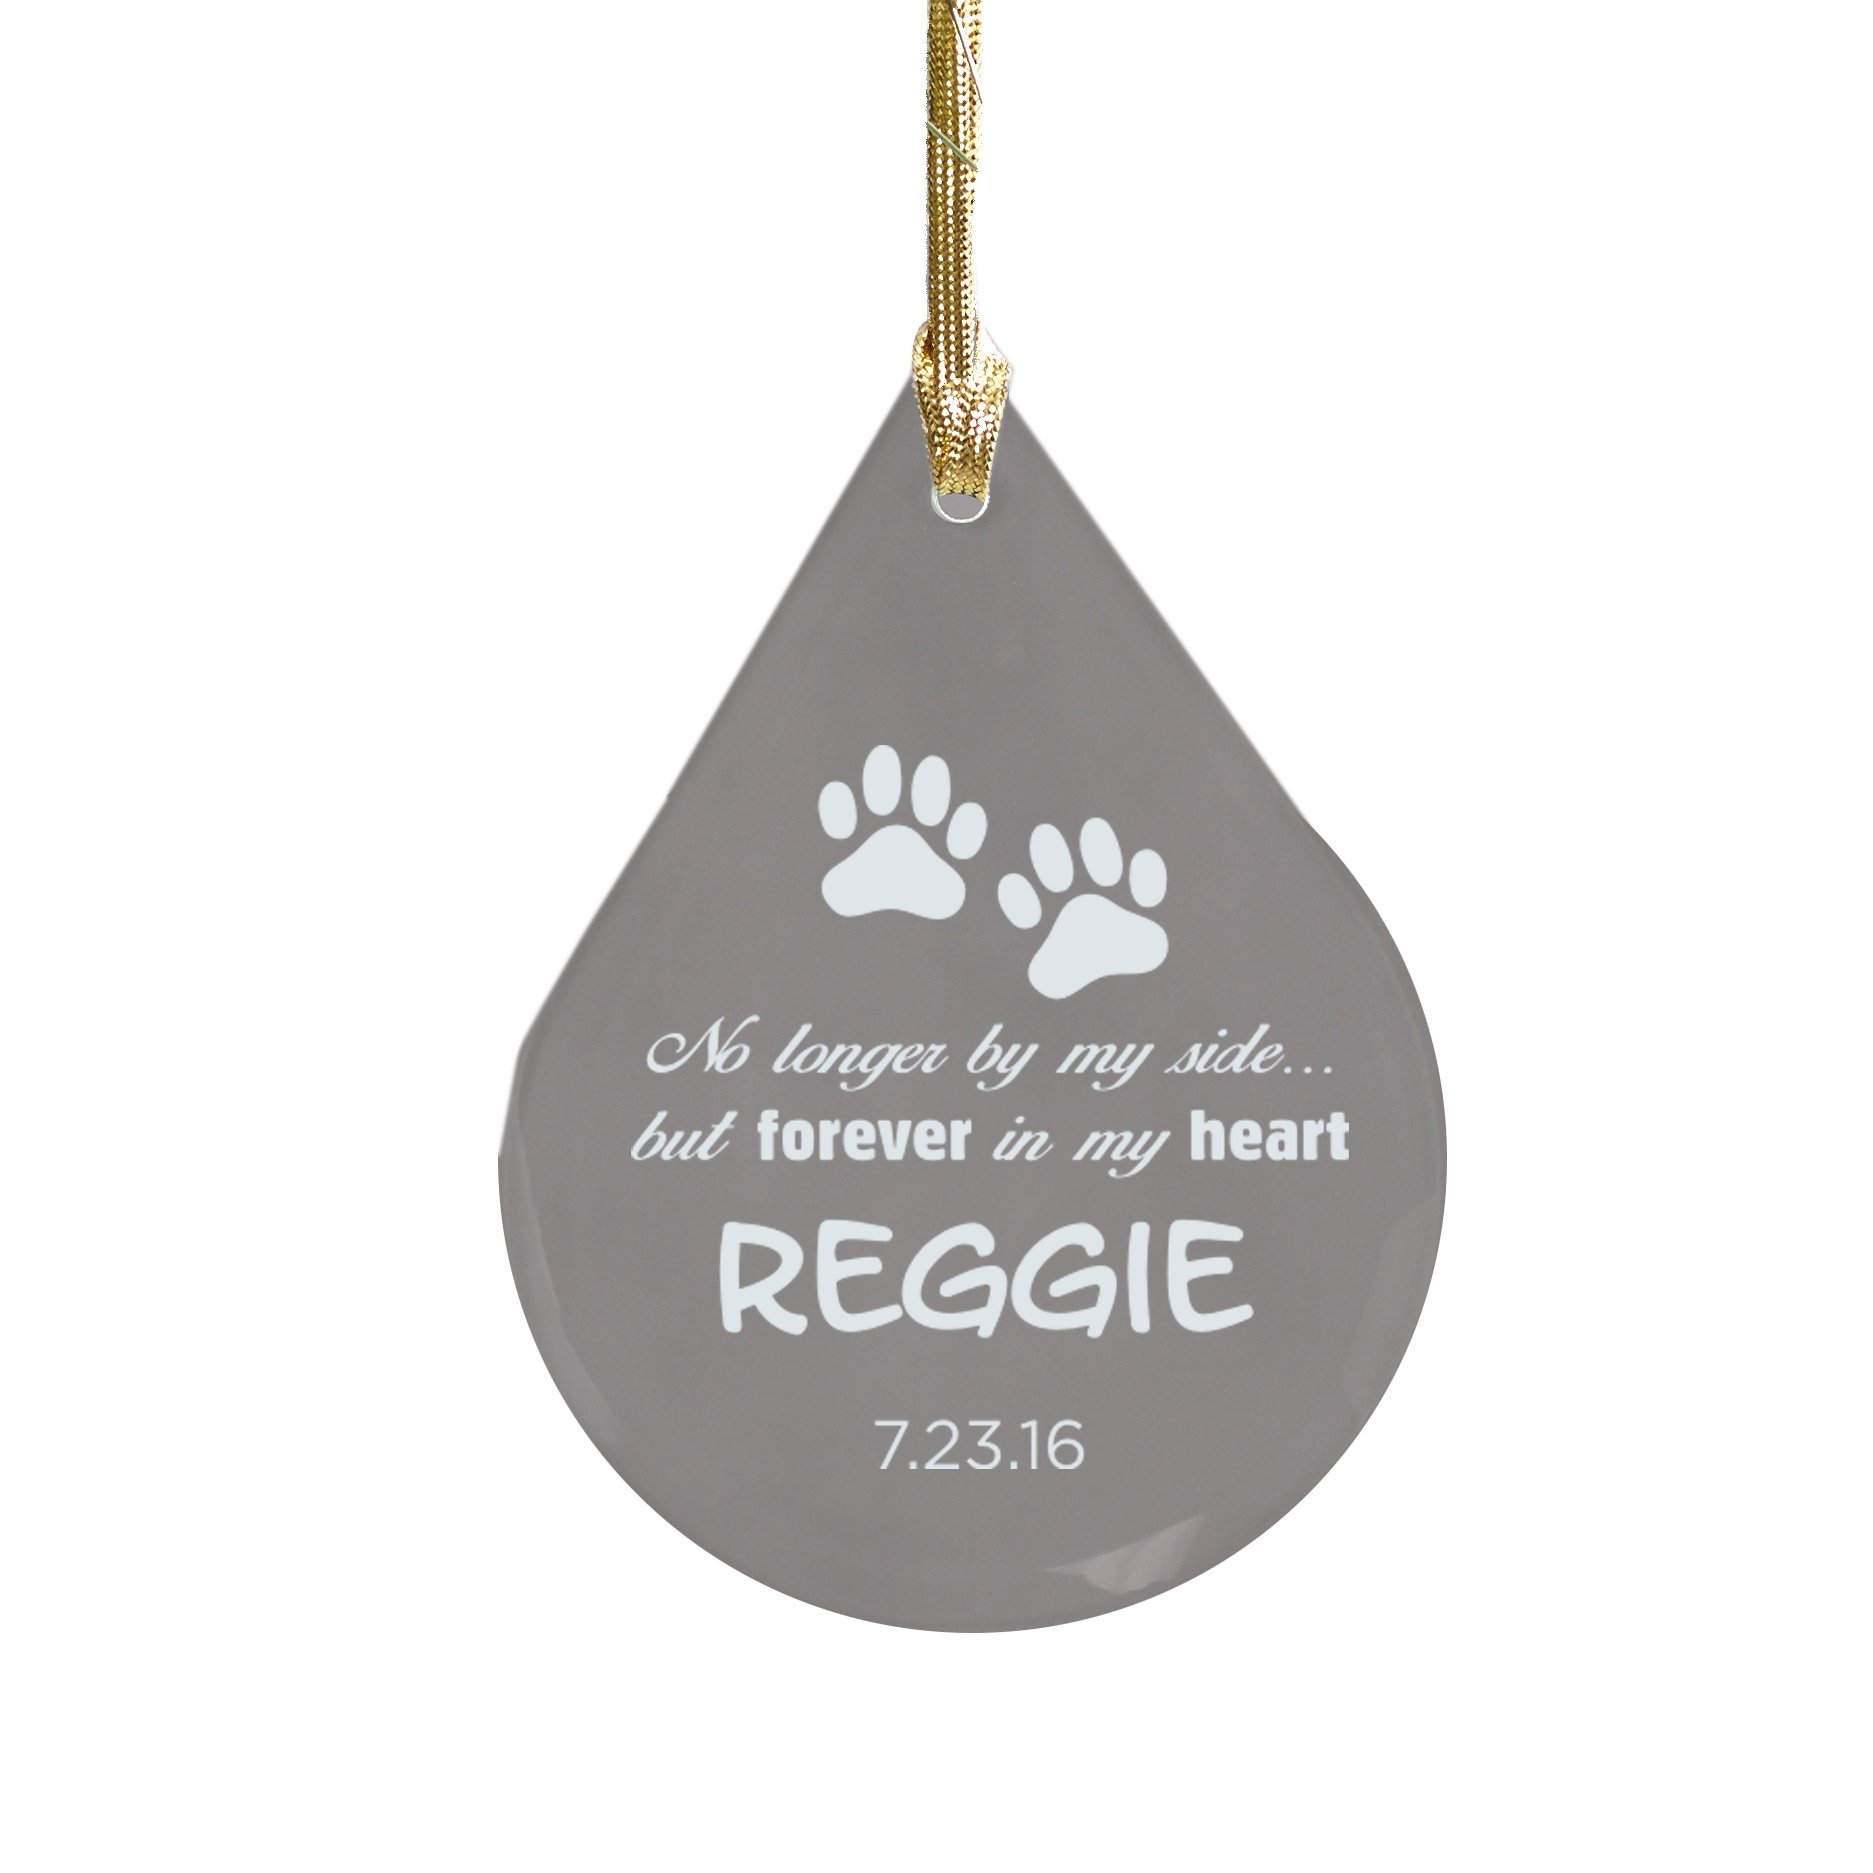 Engraved Pet Memorial Tear Drop Glass Ornament, 3 3/4'' x 2 5/8'' x 1/8''